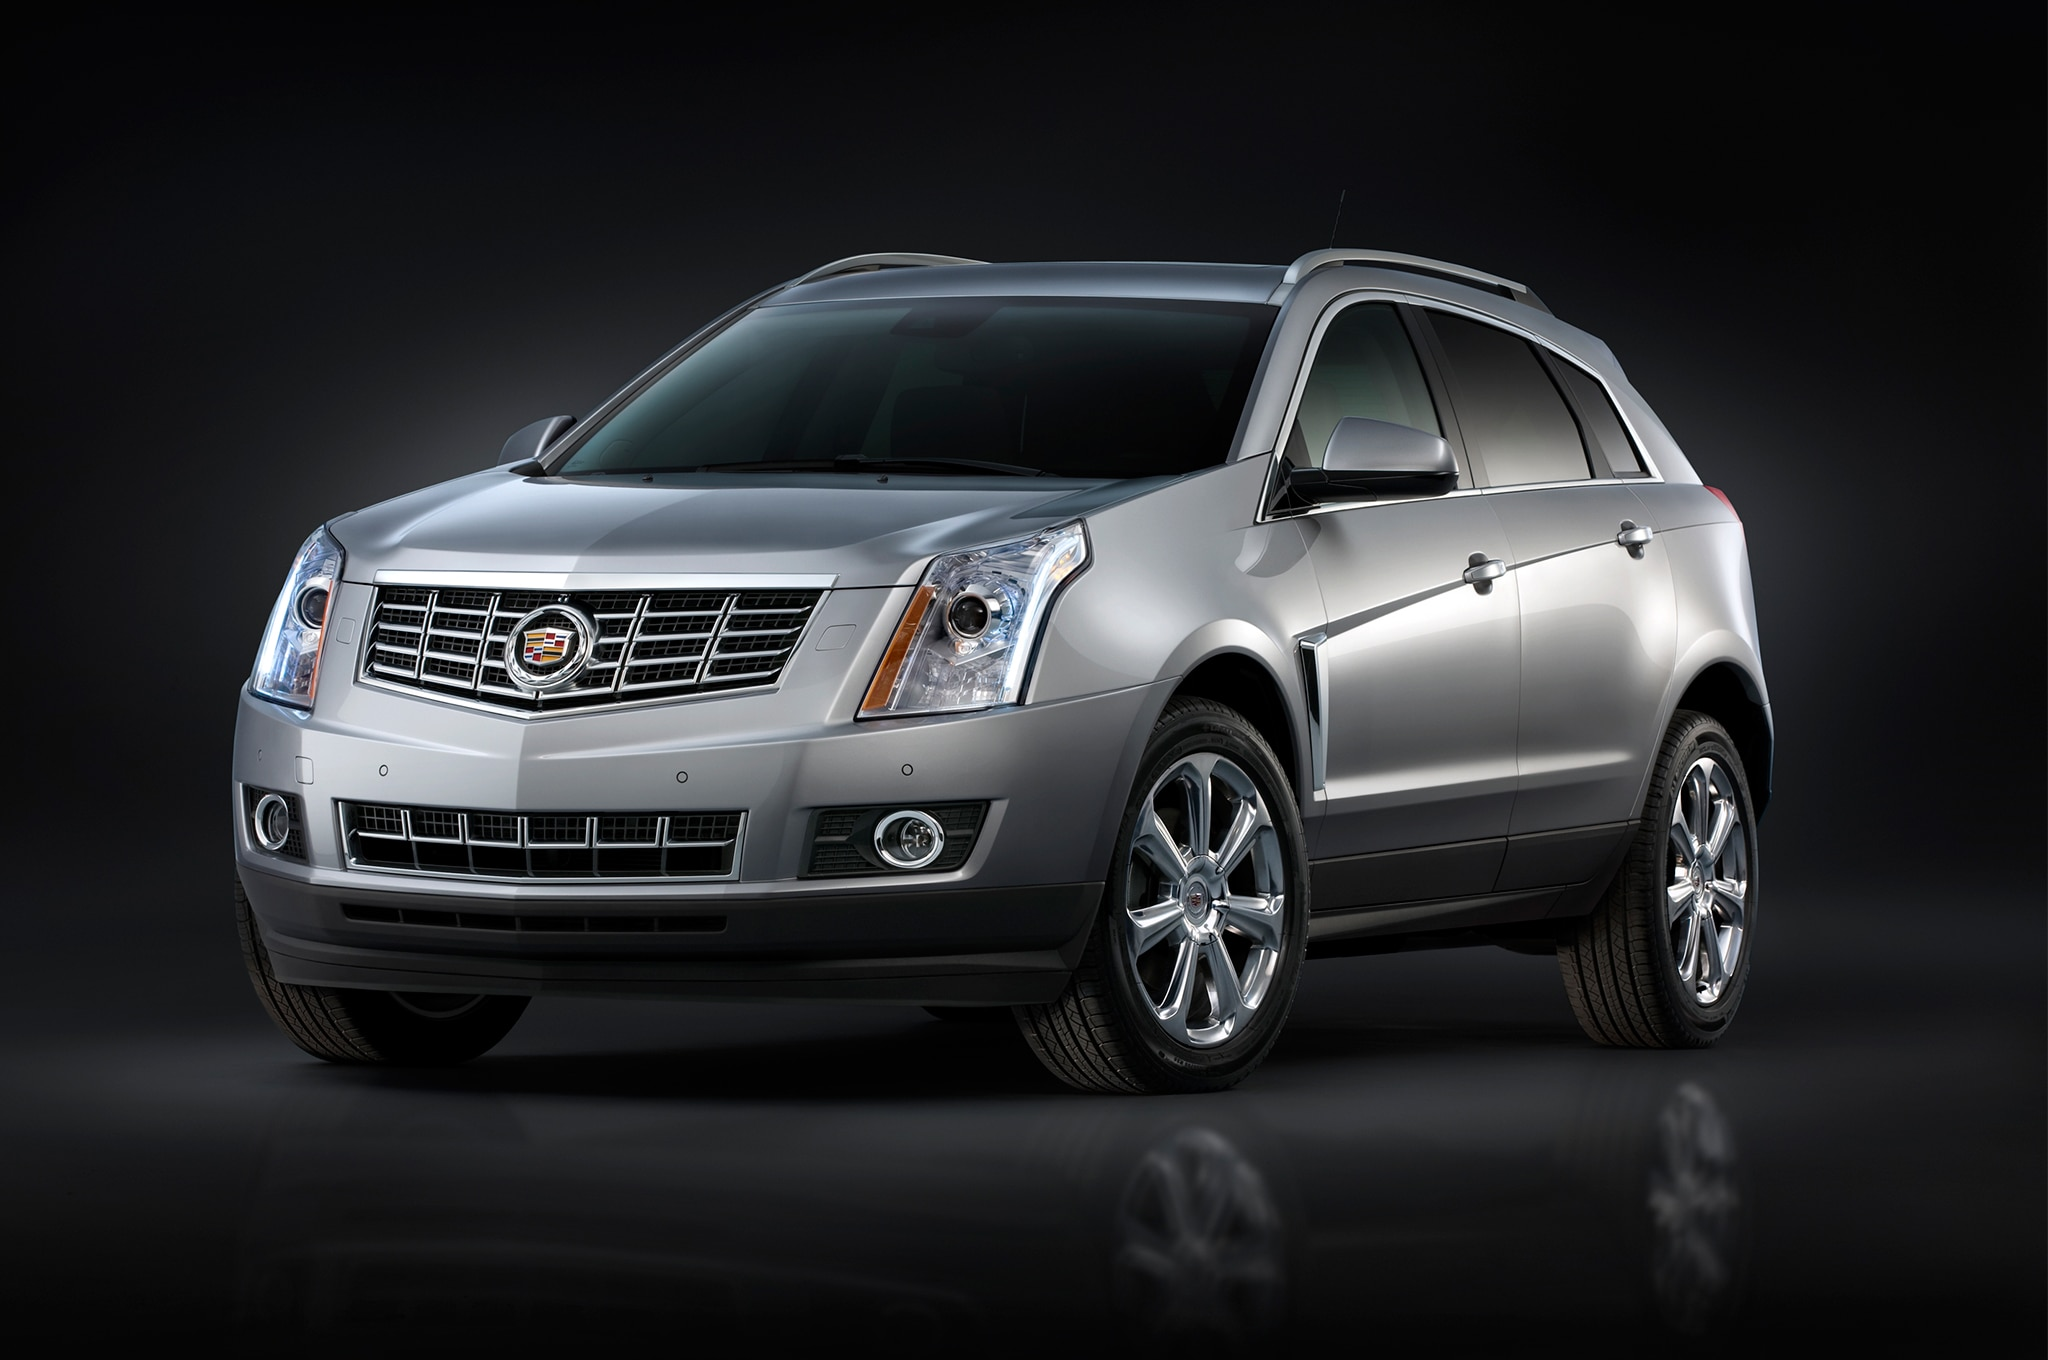 cadillac xt5 crossover spied testing. Black Bedroom Furniture Sets. Home Design Ideas